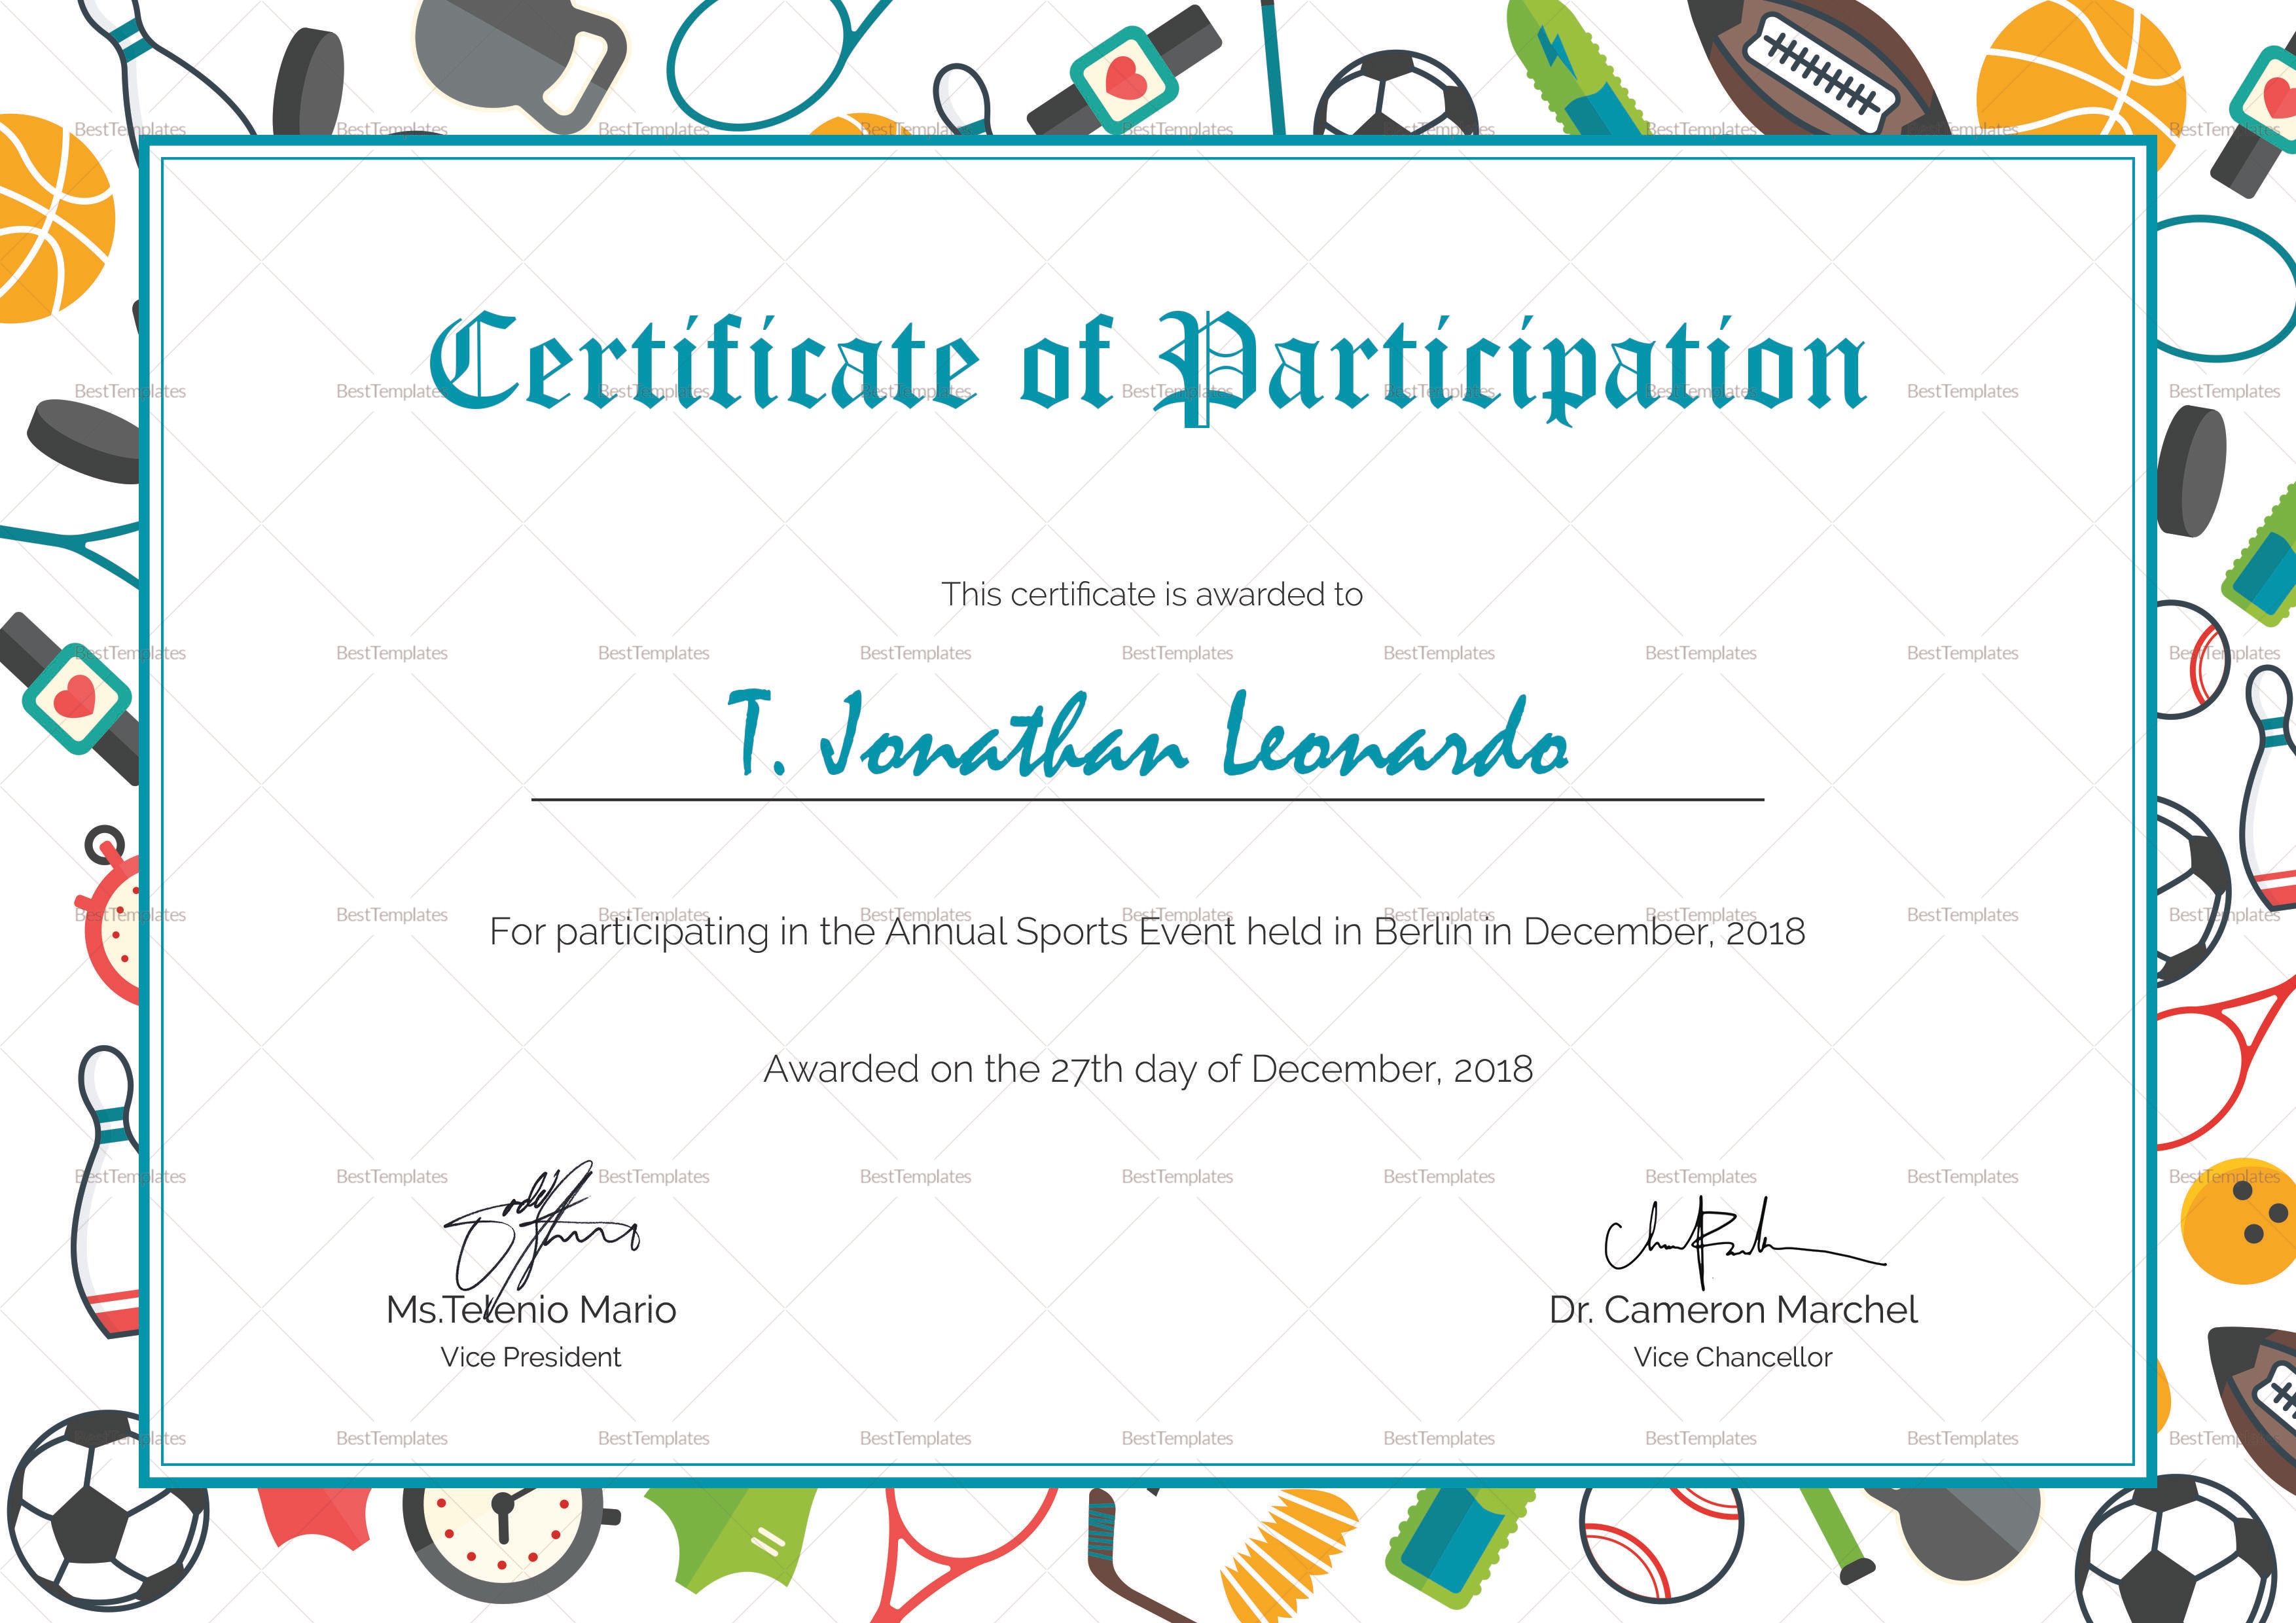 sports day certificate templates free - sports participation certificate design template in psd word